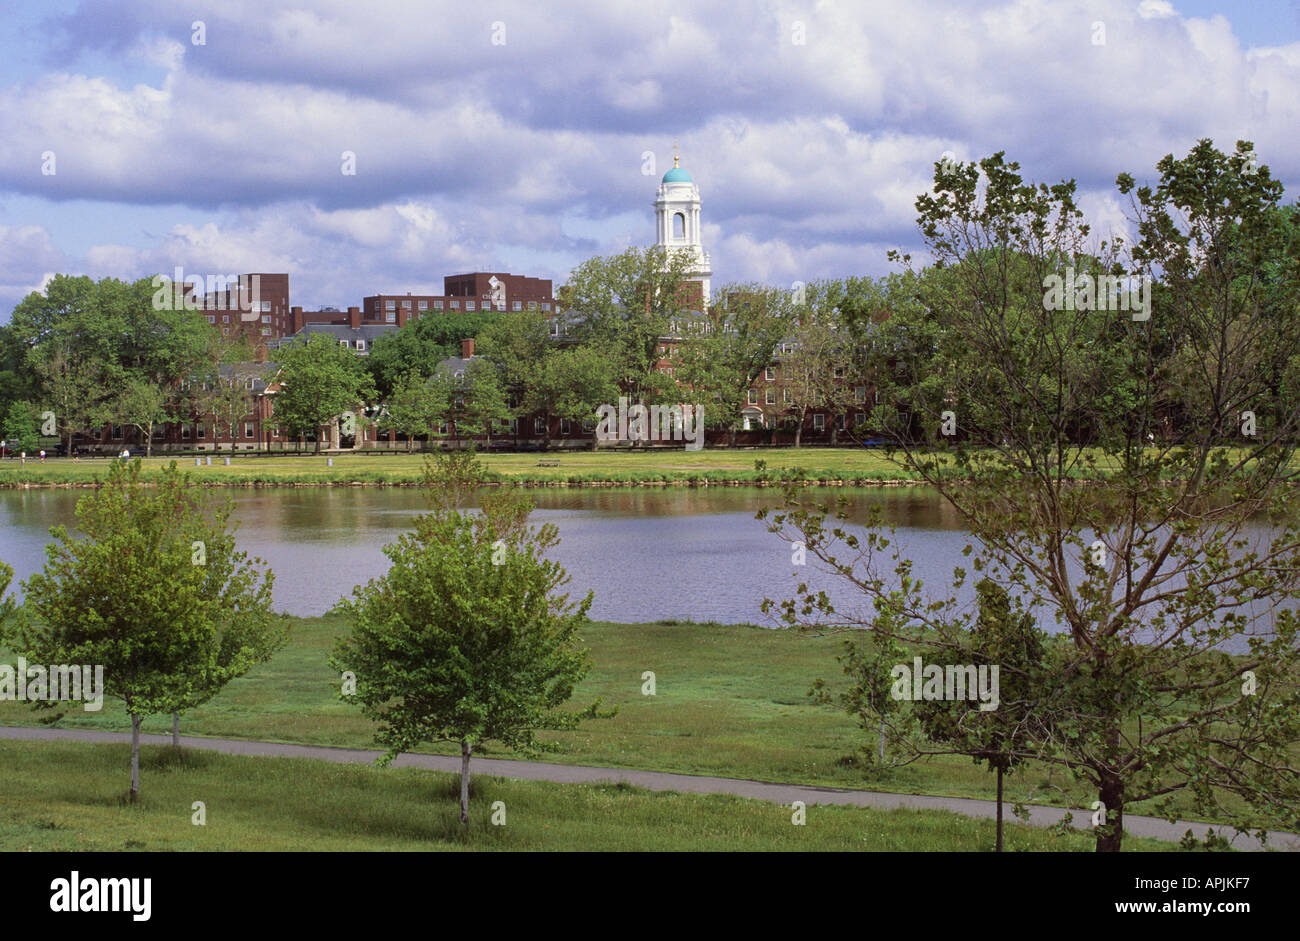 USA Cambridge Harvard University Eliot House and the The Banks of the Charles River - Stock Image